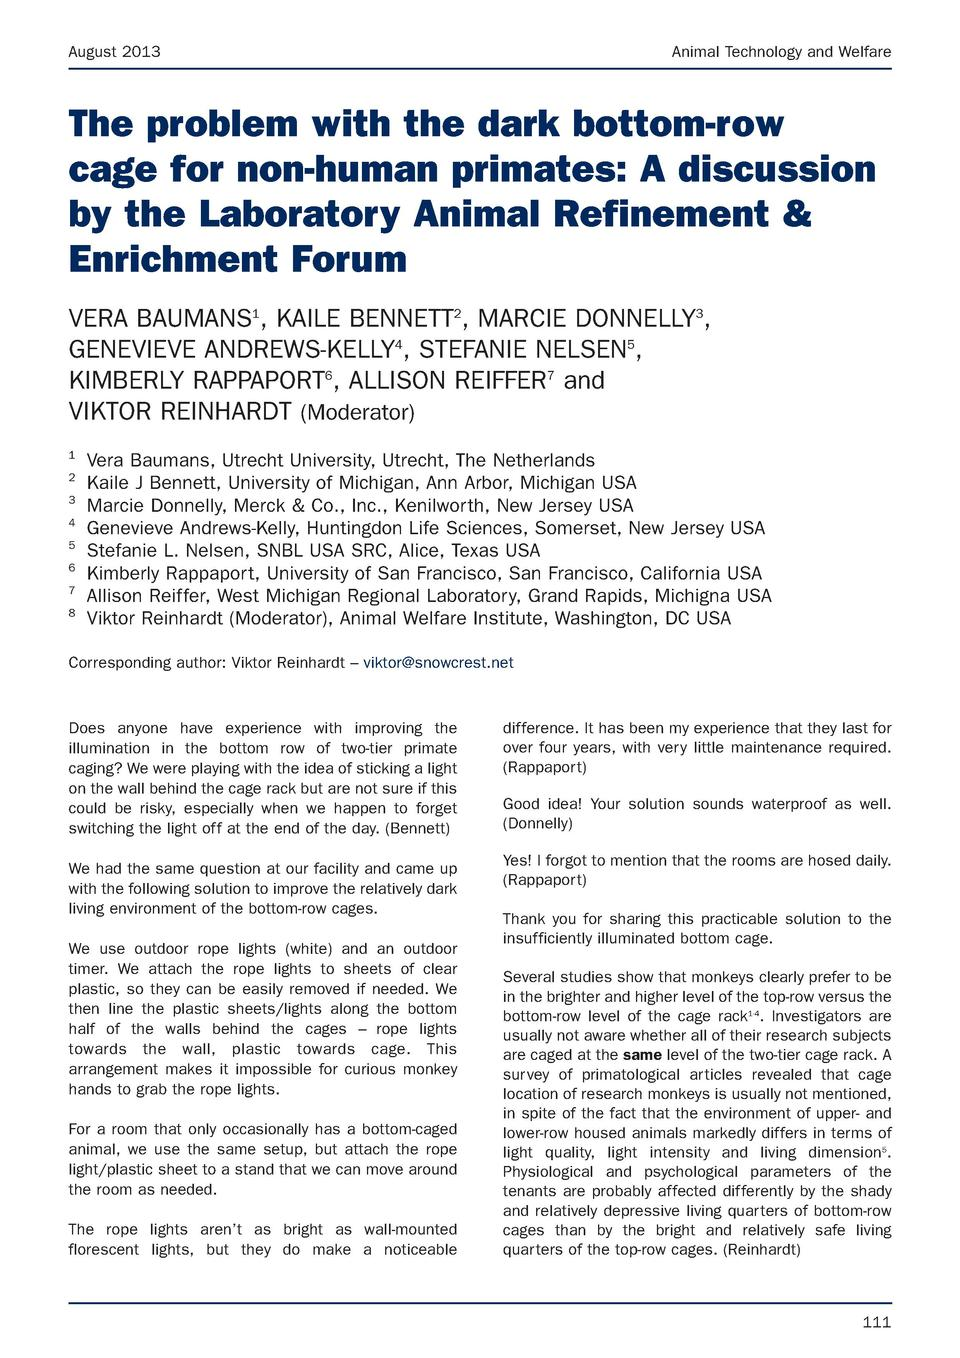 August 2013  Animal Technology and Welfare  The problem with the dark bottom-row cage for non-human primates  A discussion...